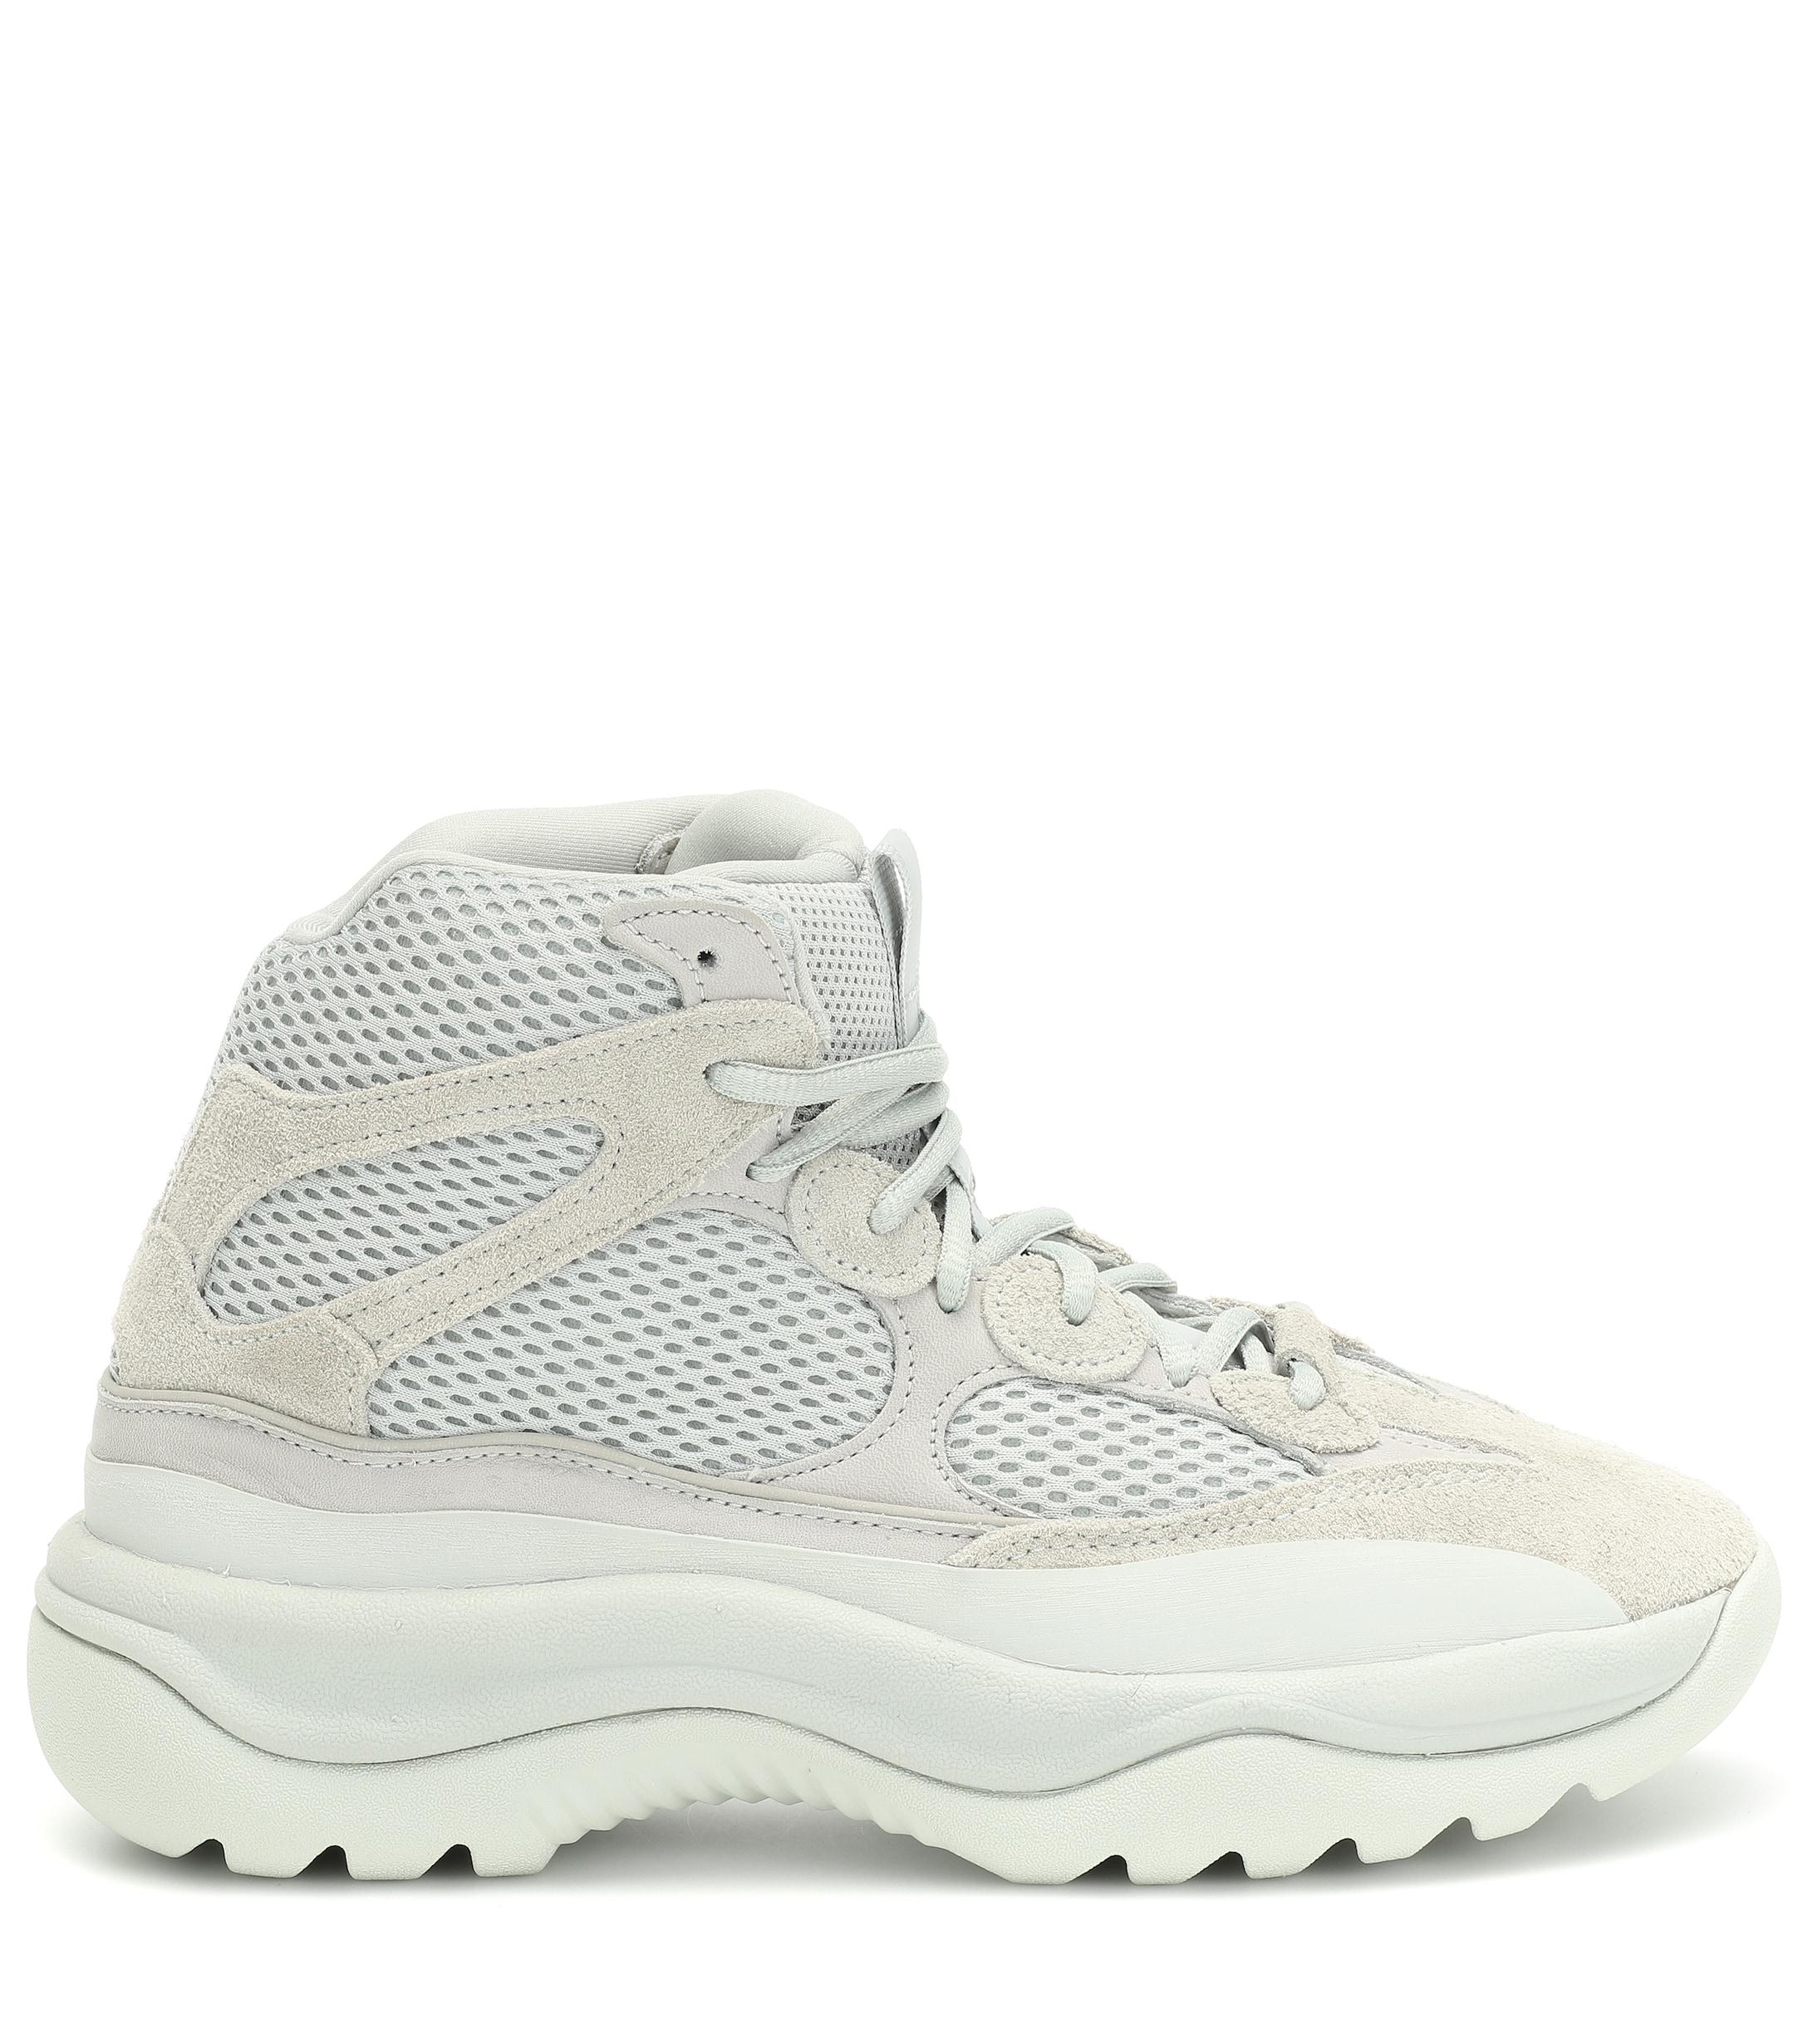 Baskets YZY DSRT BT Rock en cuir, daim et résille adidas Originals en coloris Gris  9N0N